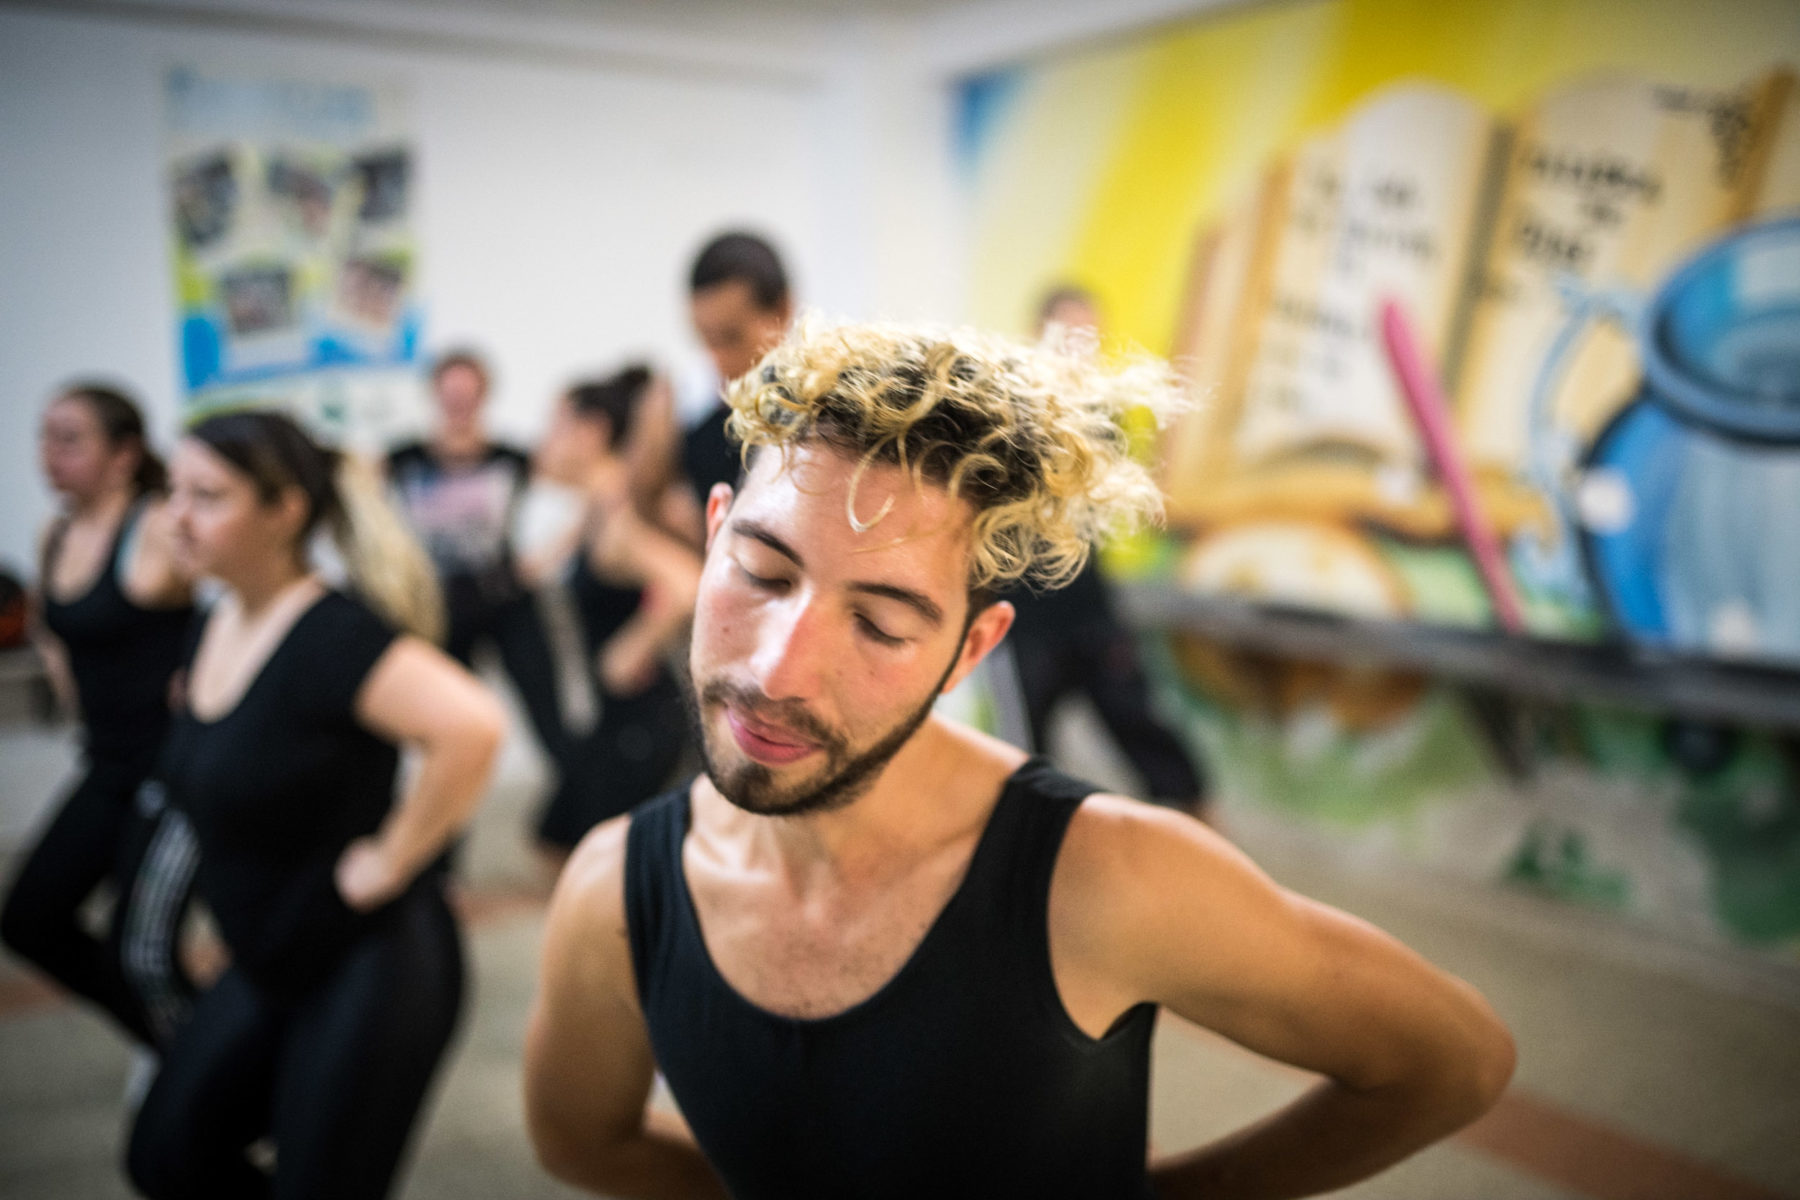 Dancing is everything for Victor. He is part of a Colombian folklore group rehearsing traditional dances from the highlands.